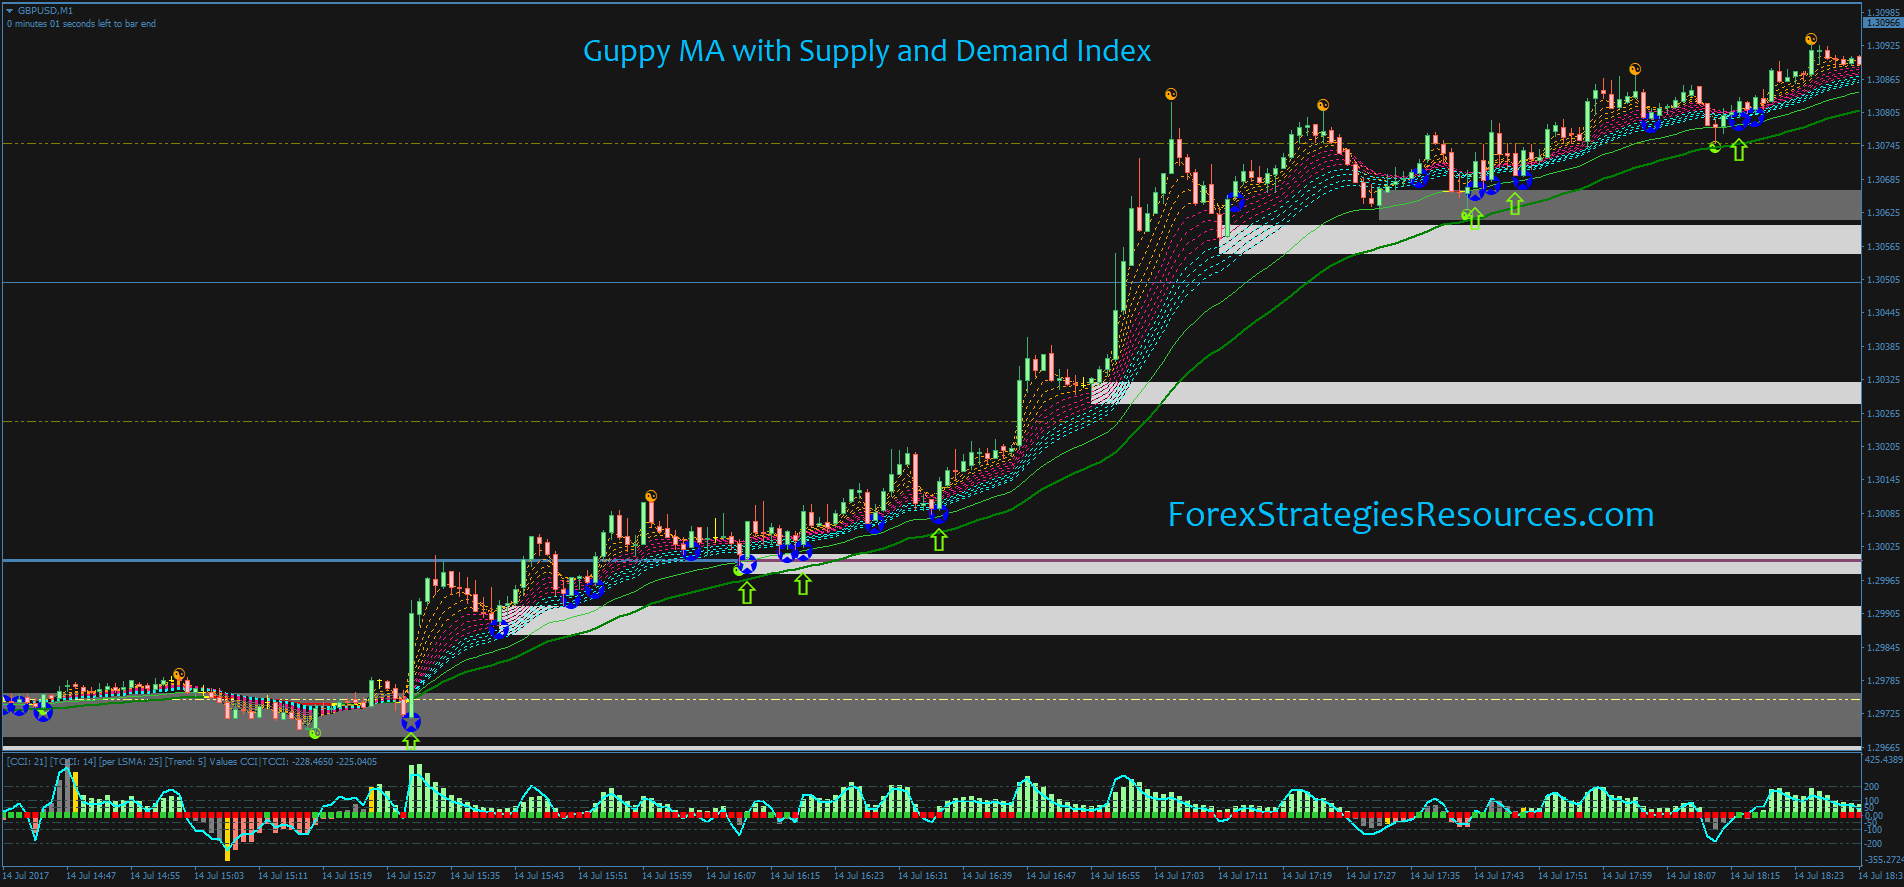 Guppy MA with Supply and Demand Index - Forex Strategies